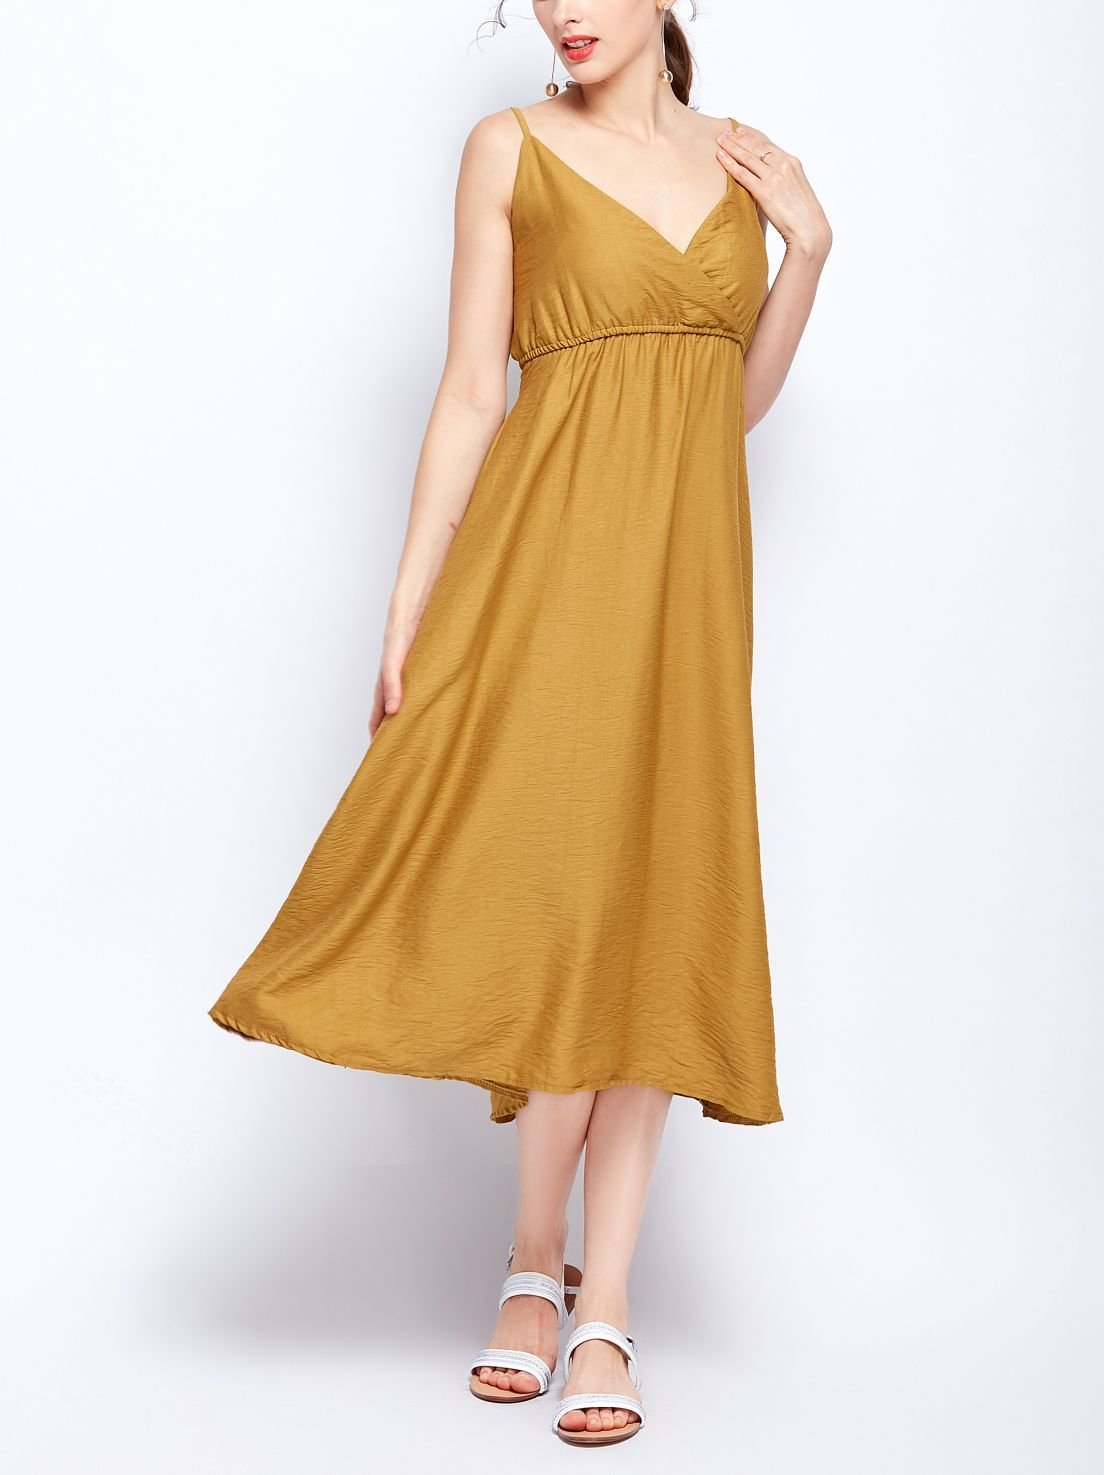 Formal Dress with Slip Styling